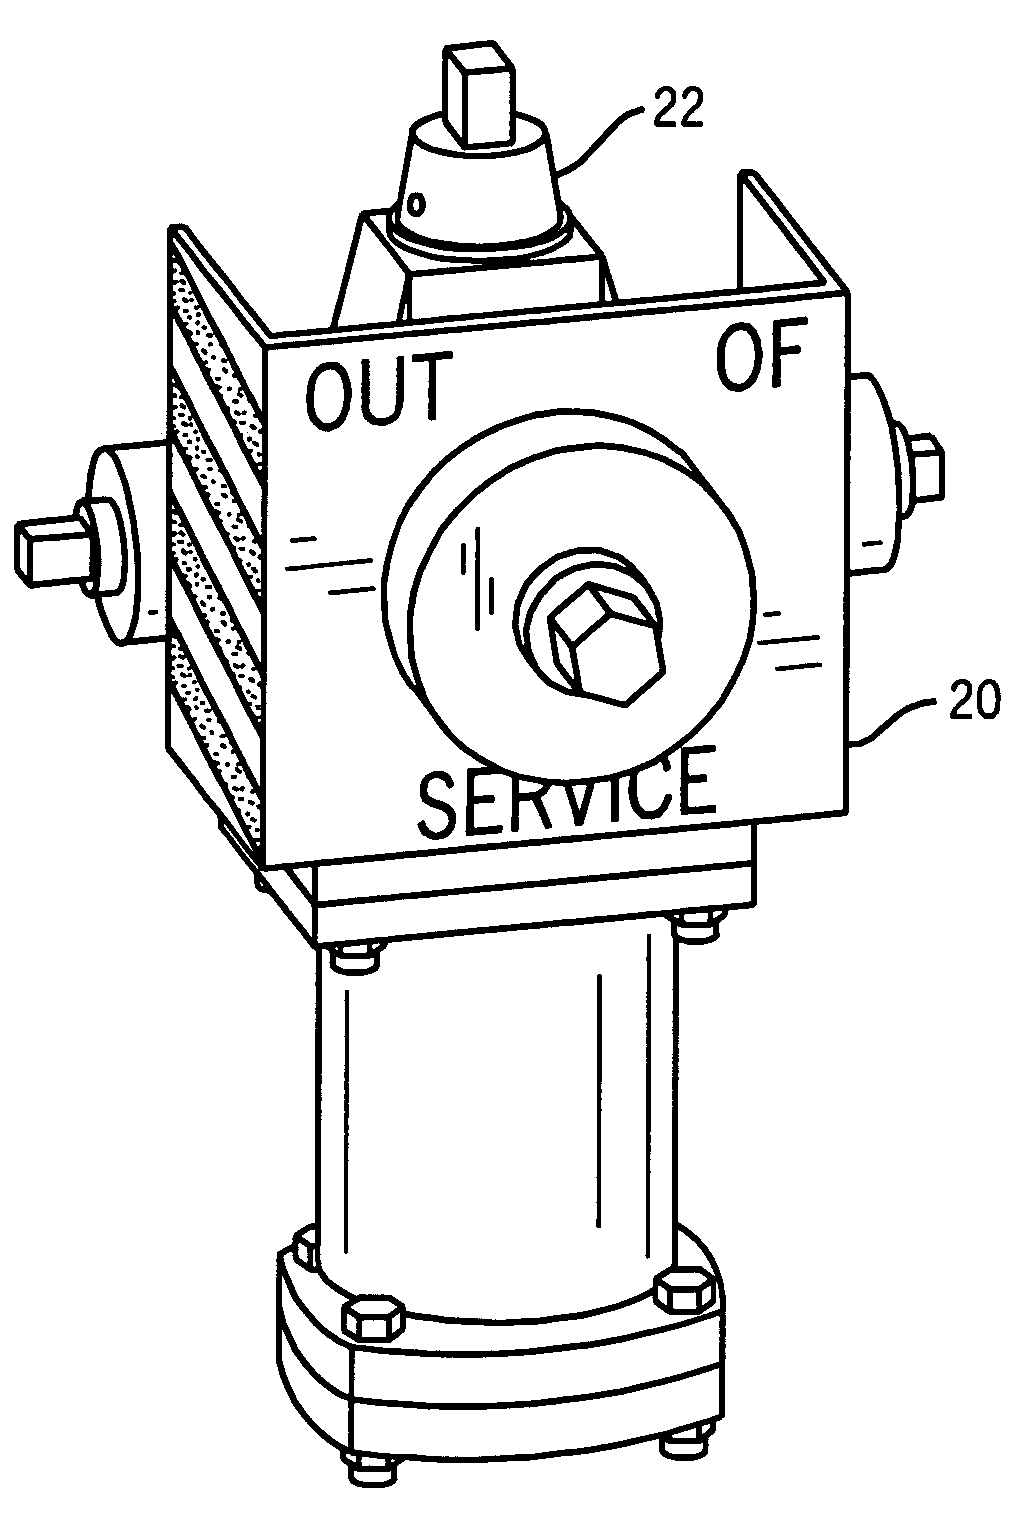 fire hydrant coloring page fire hydrant coloring pages hellokidscom coloring fire hydrant page